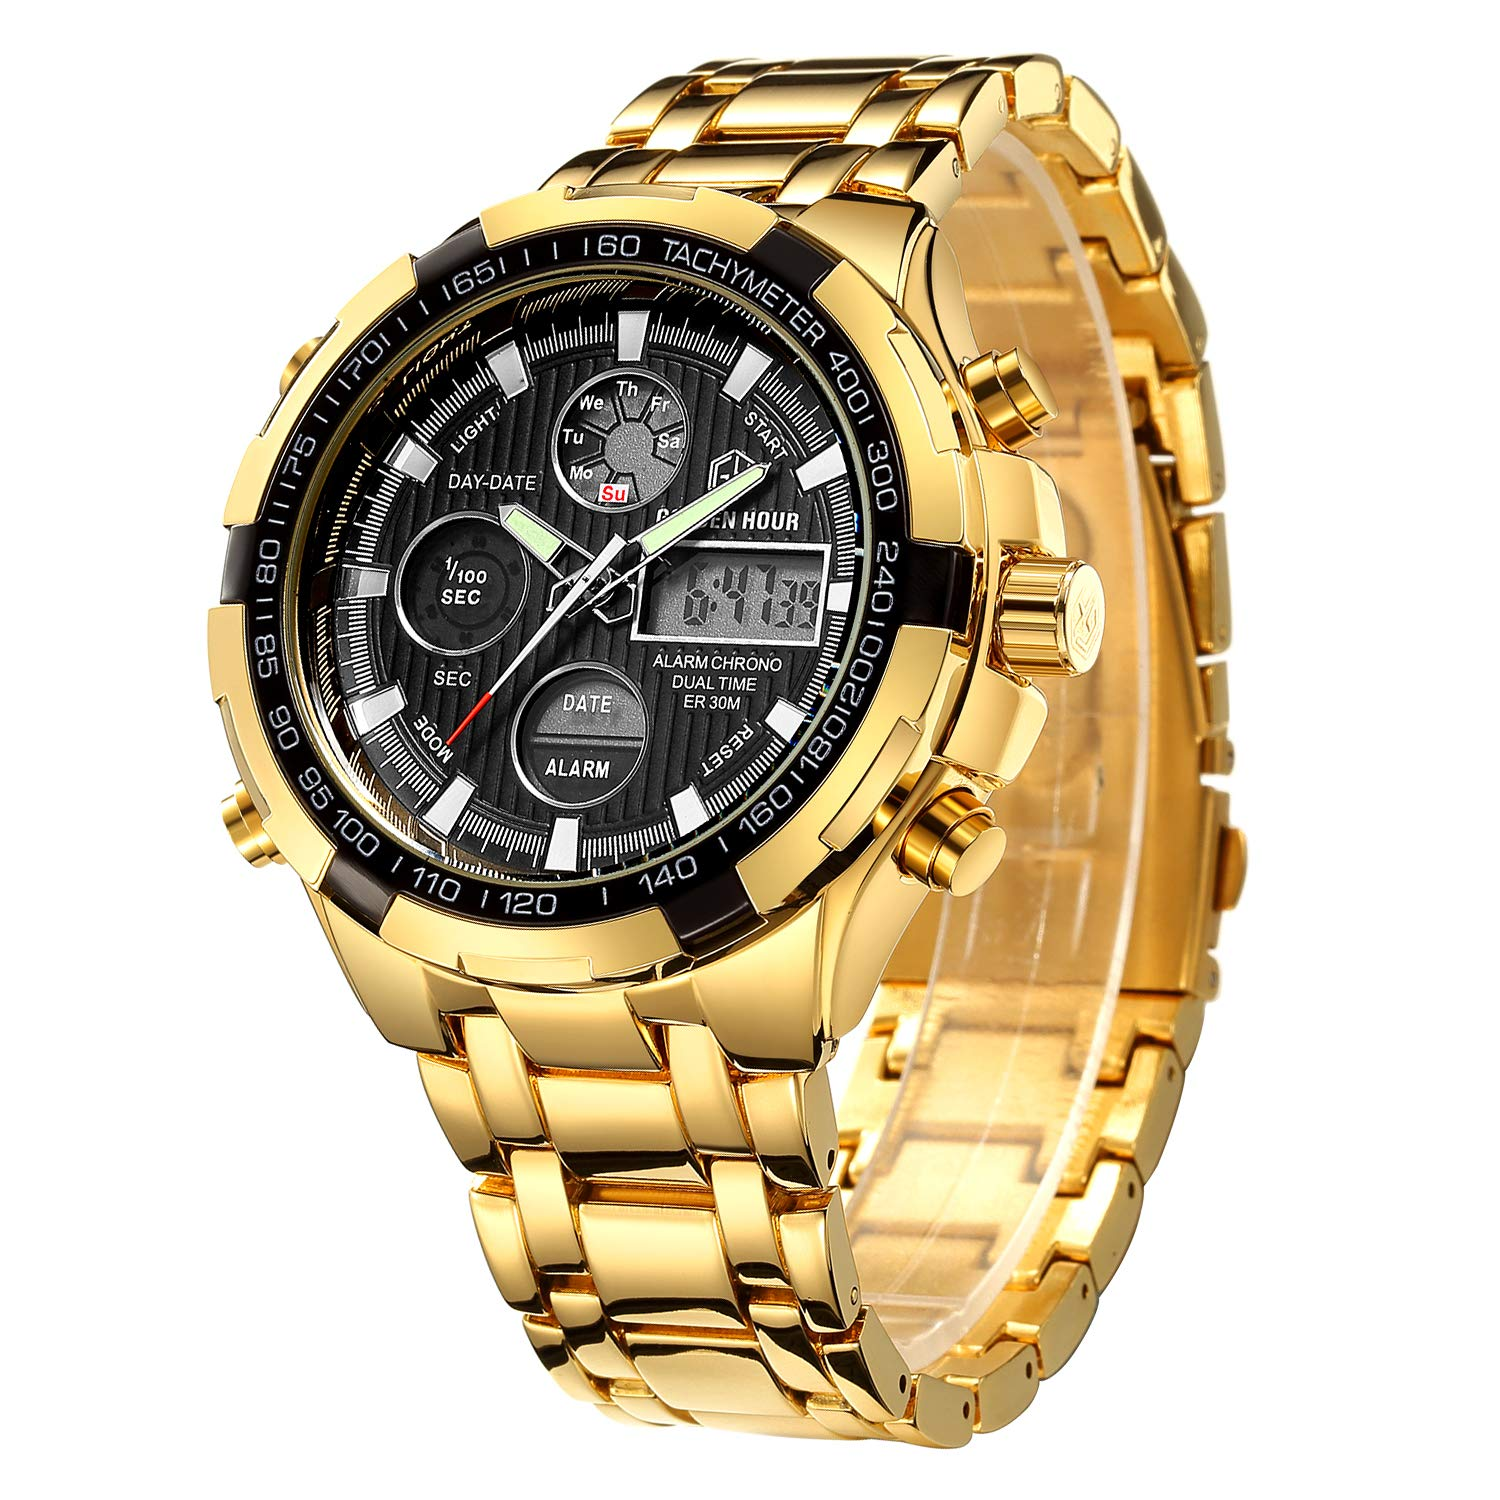 Watches Sports Watches Men Wrist Watches Digital And Quartz Boys Military Diving Watchband Top Luxury Brand Fitness Watch